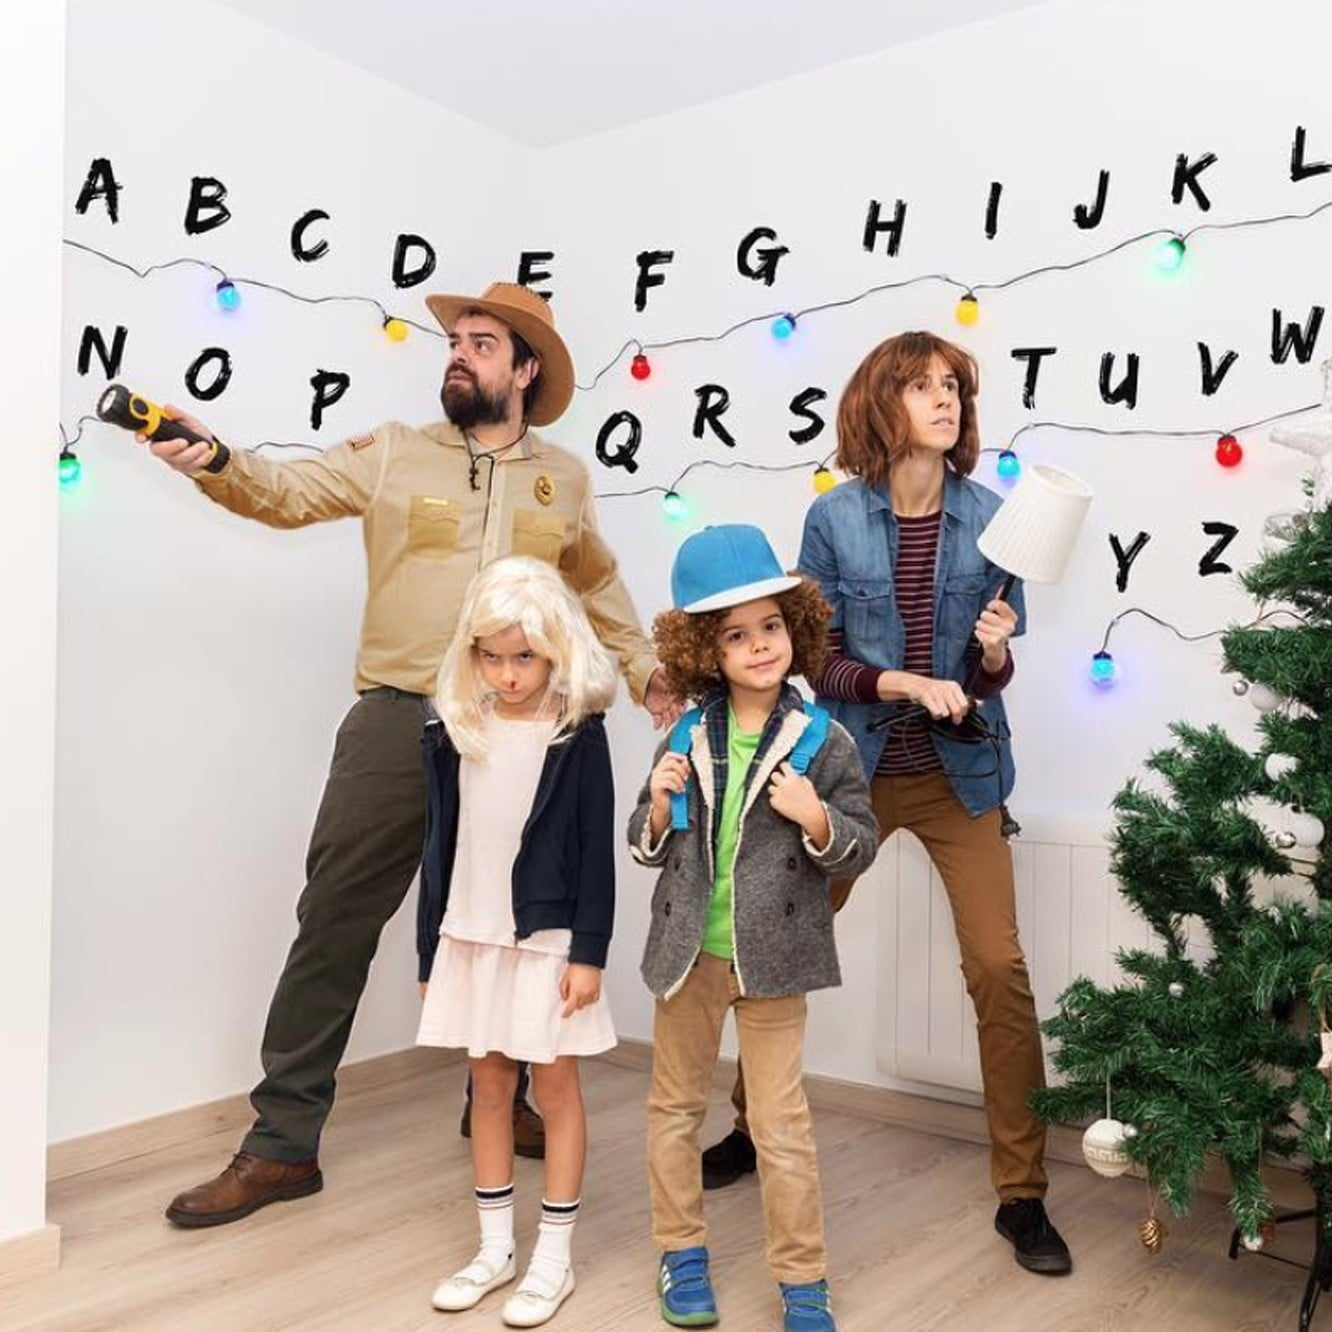 4 People Halloween Costumes.The Best Halloween Costumes For Families Of Four 2020 Popsugar Family